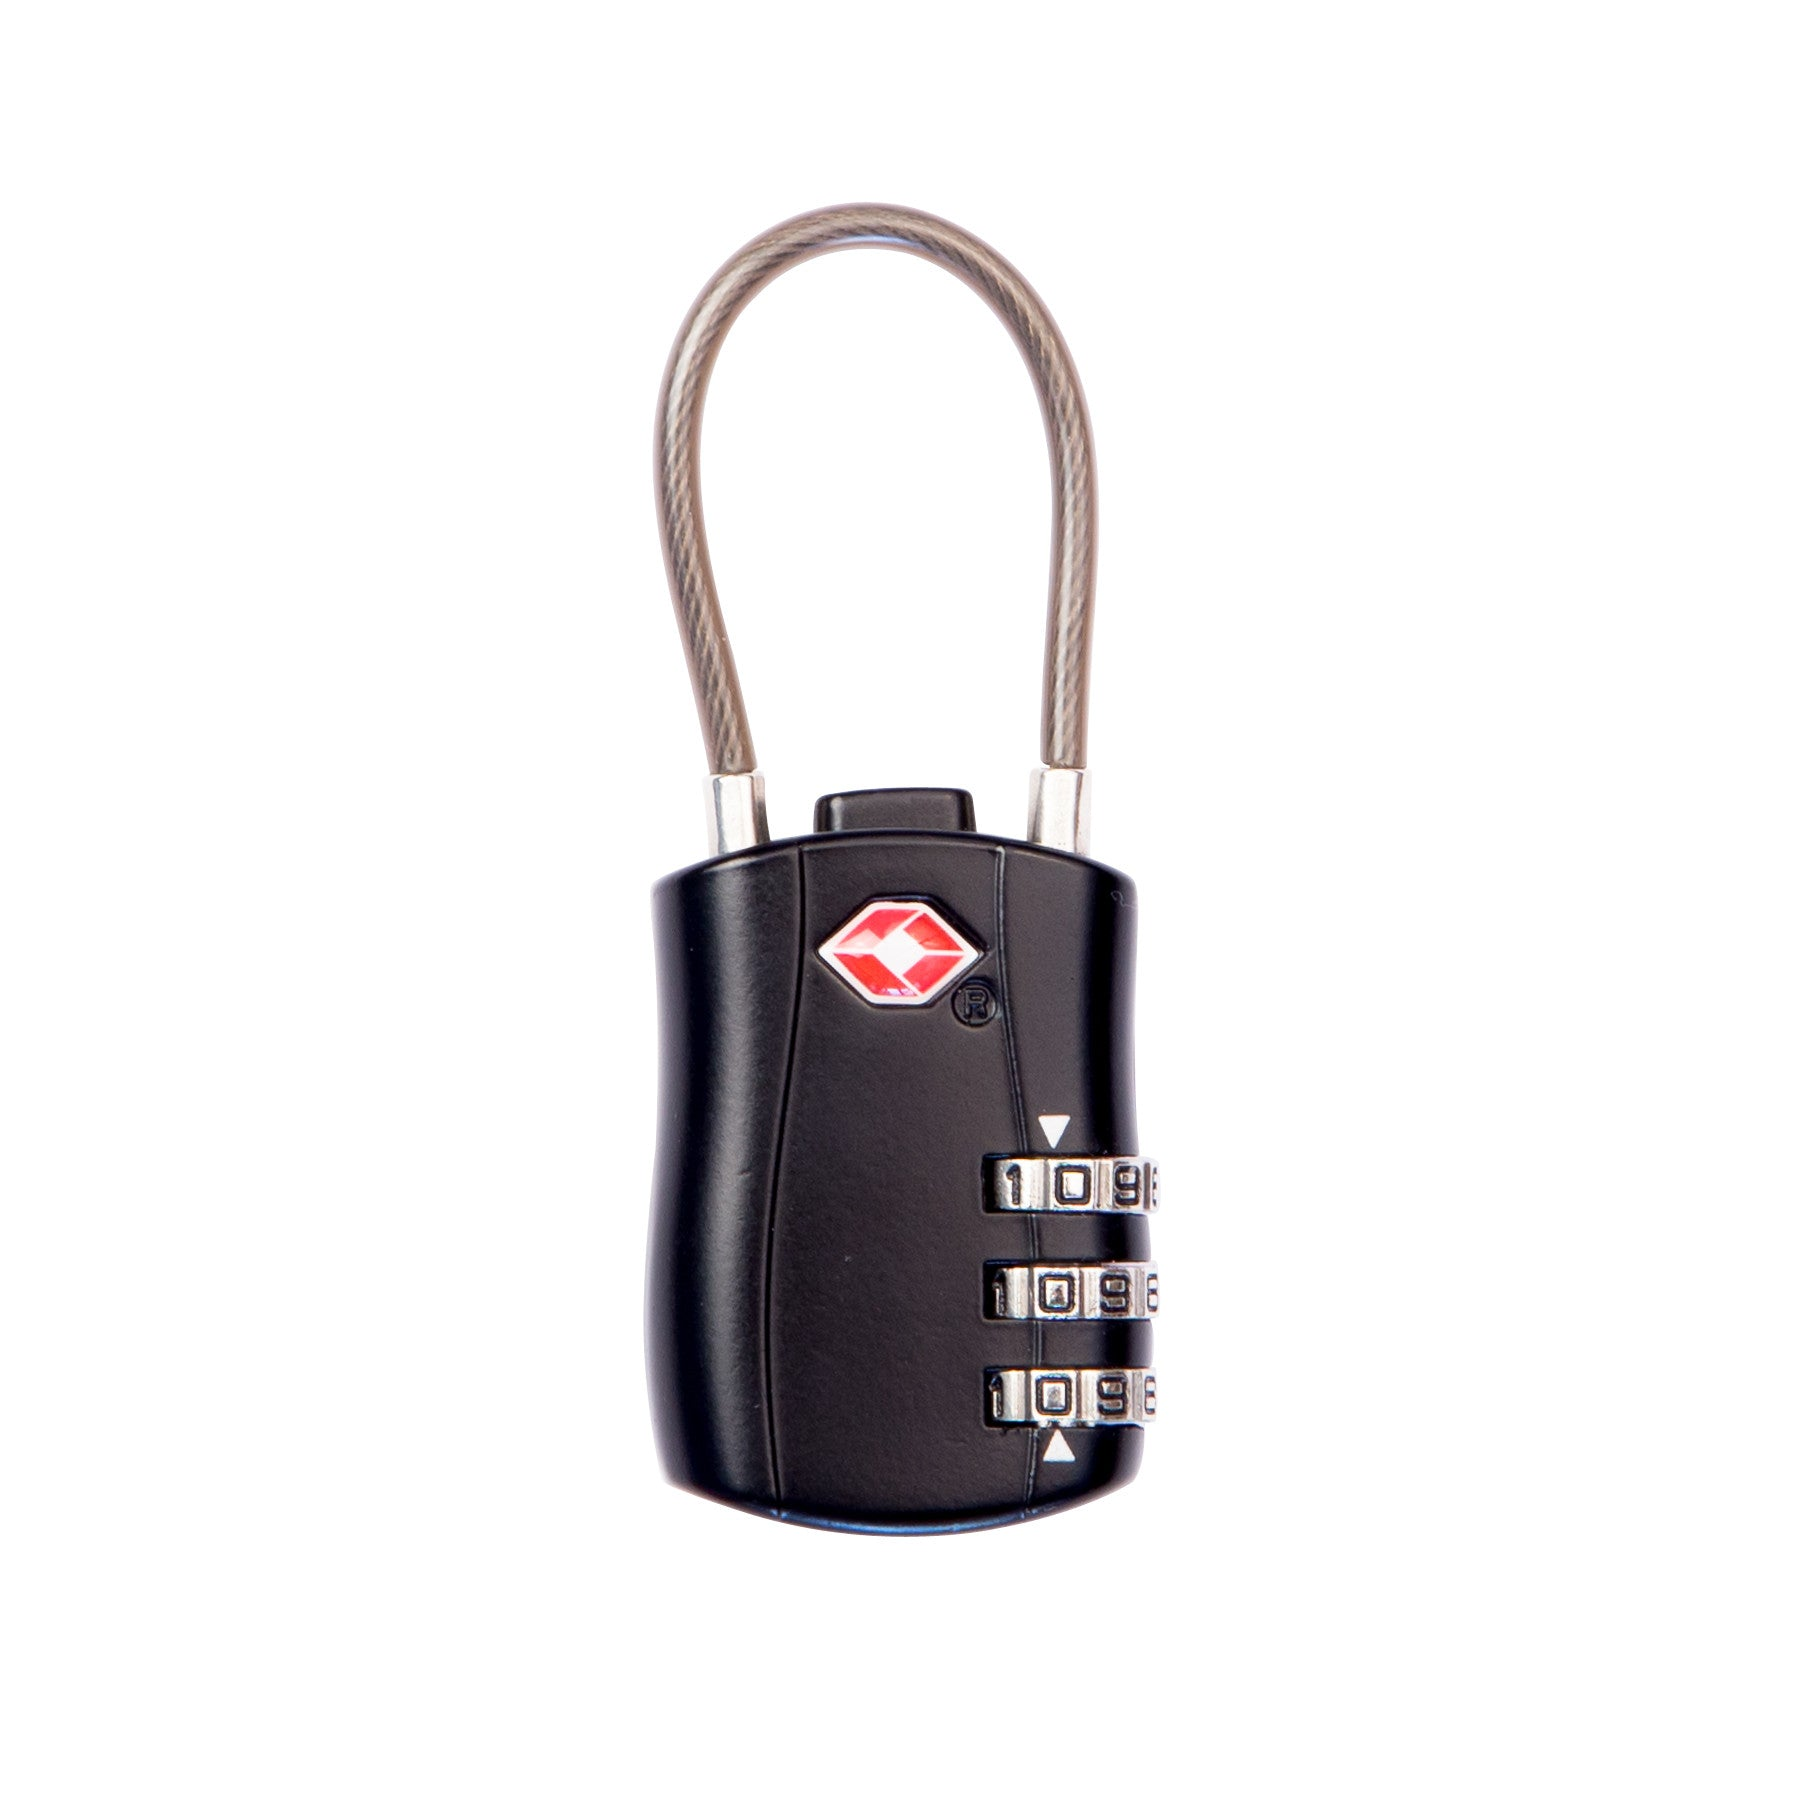 97c3c6a91d76 TSA Approved 3 Digit Cable Lock